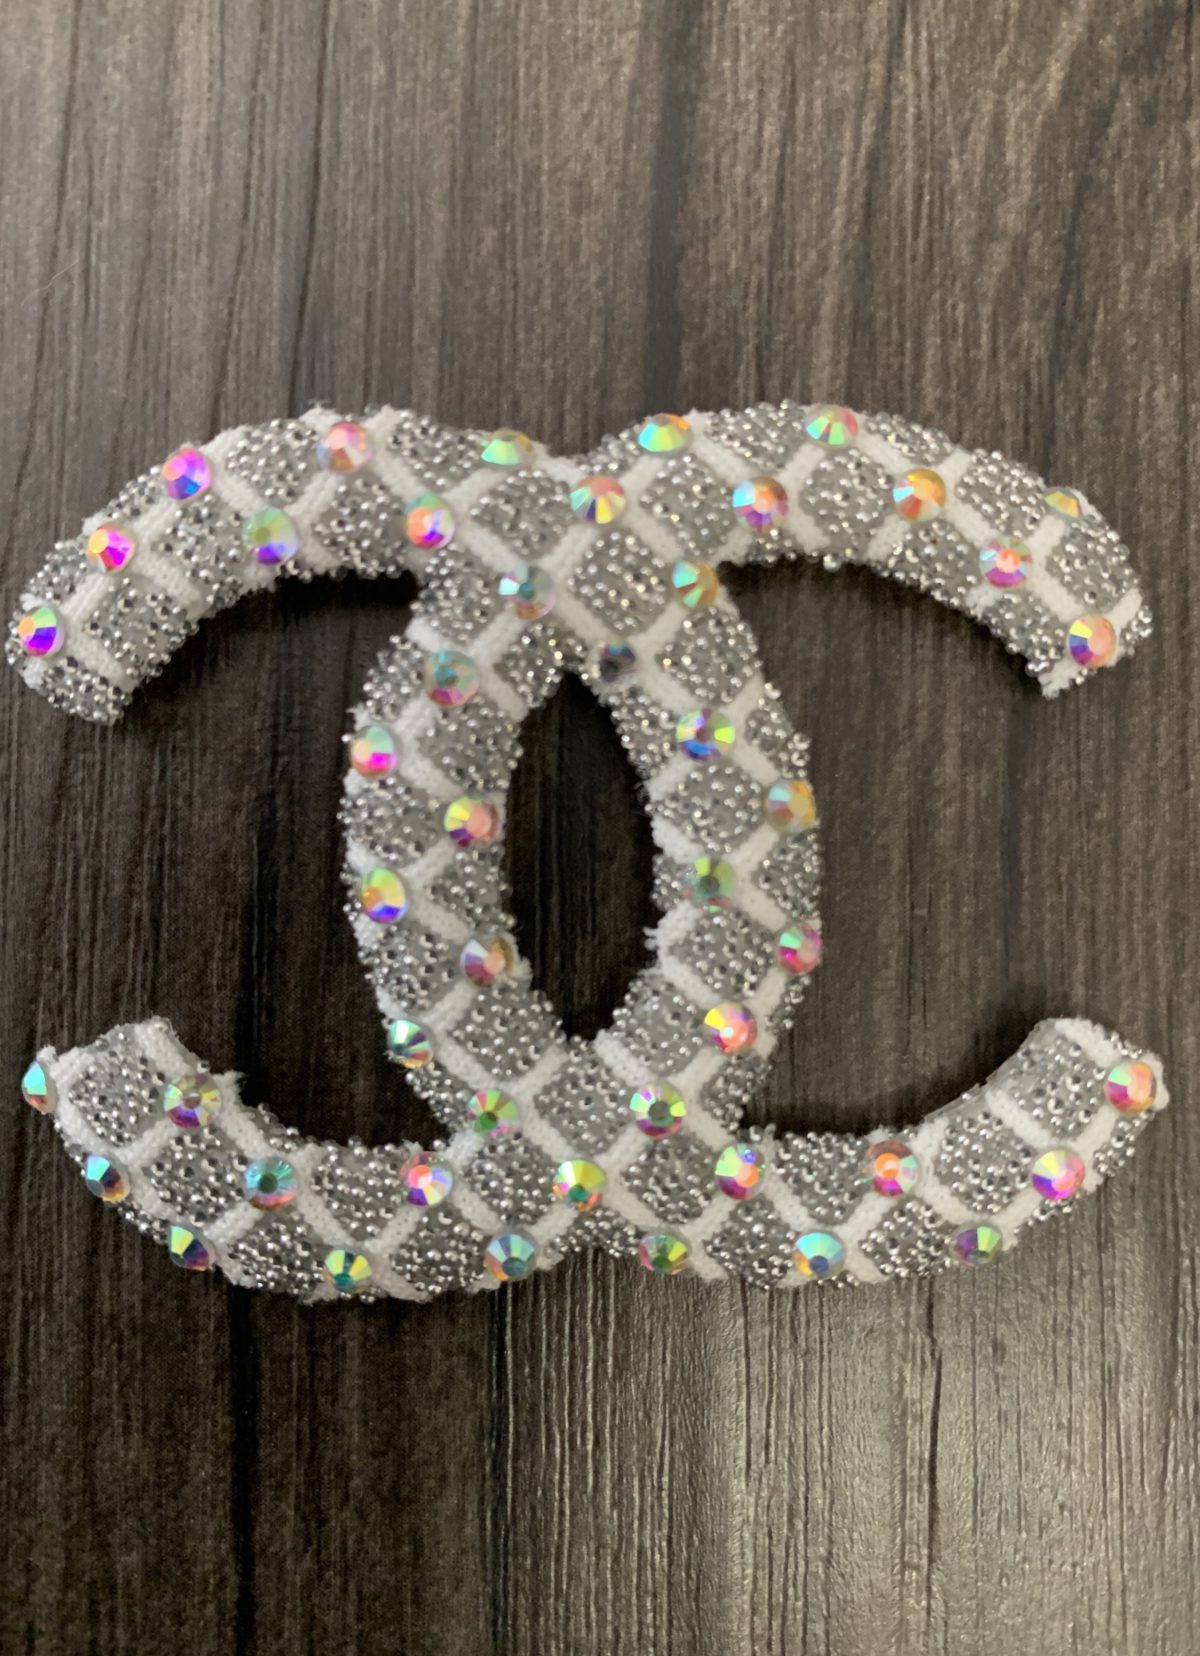 New Chanel Rhinestone Iron on Emblem Patch 2